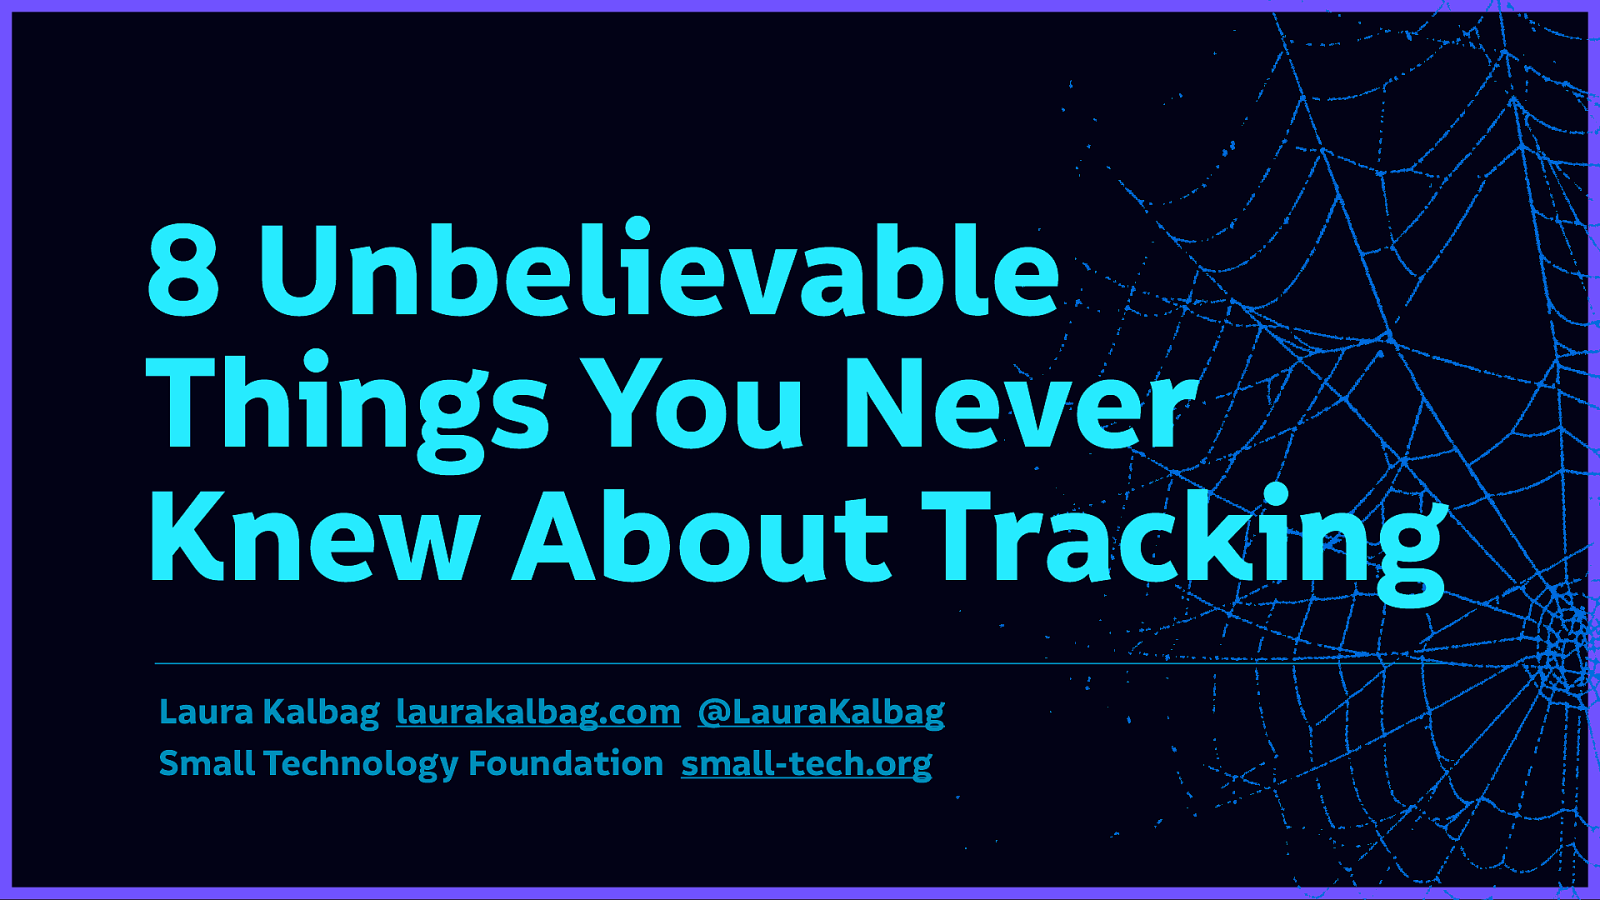 8 Unbelievable Things You Never Knew About Tracking